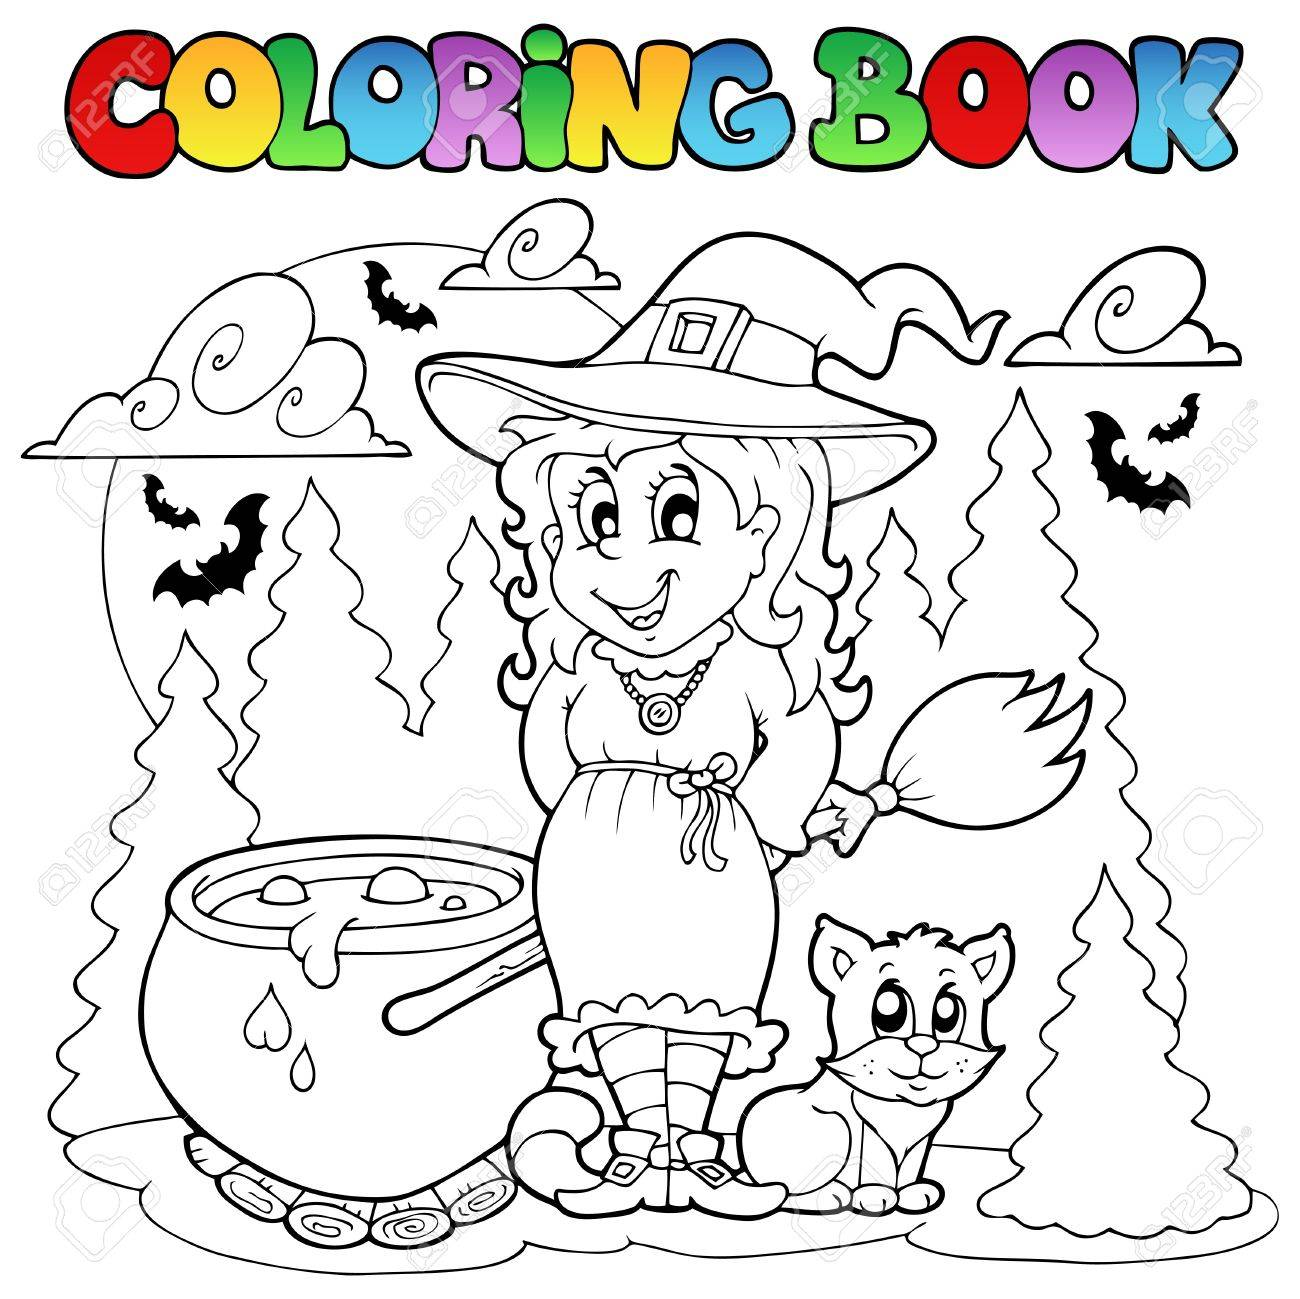 Coloring Book Halloween Character Illustration Stock Vector